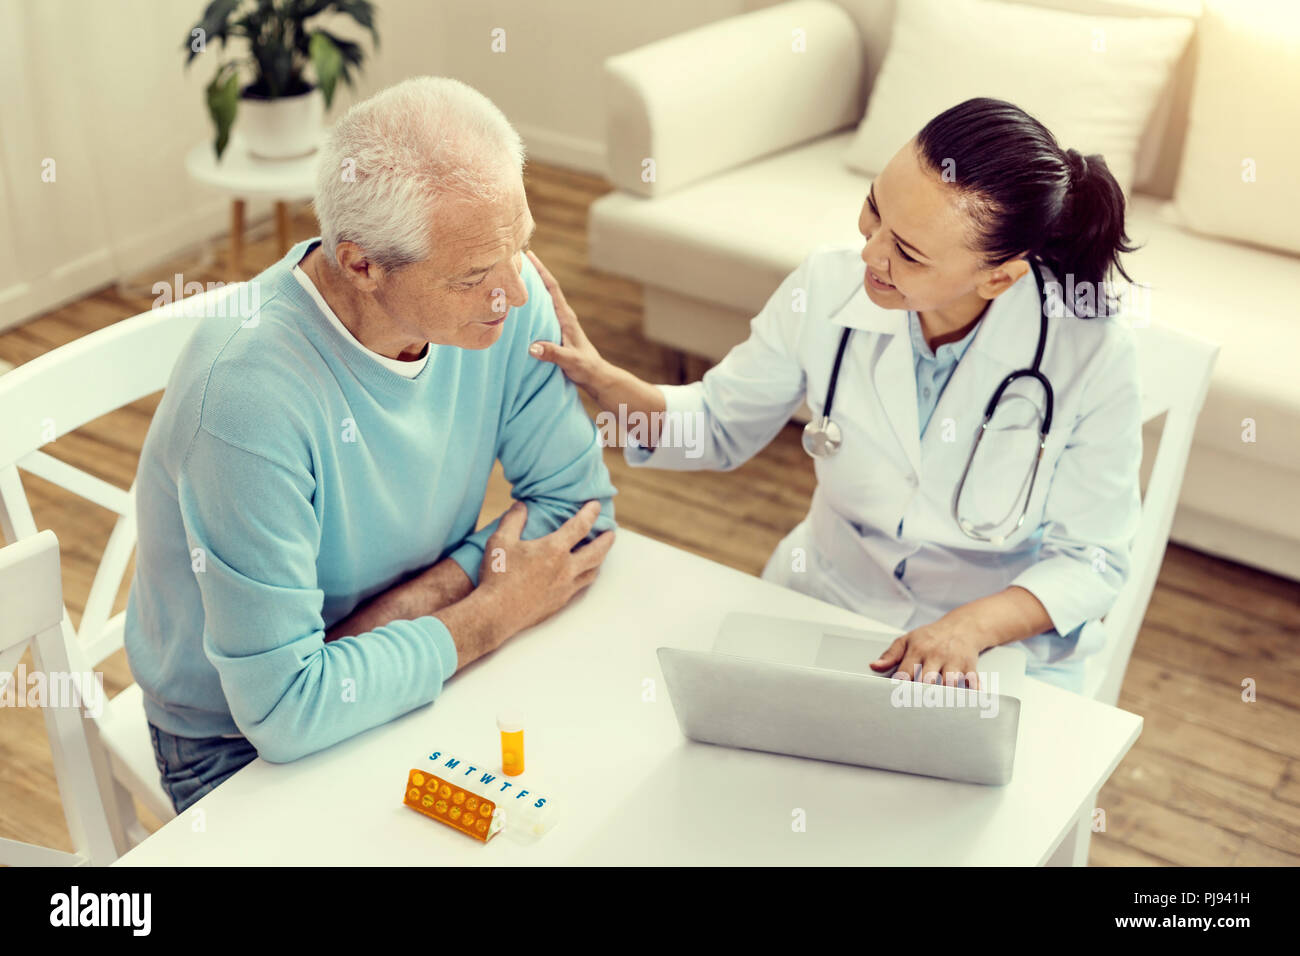 Mindful nurse cheering retired patient and smiling - Stock Image